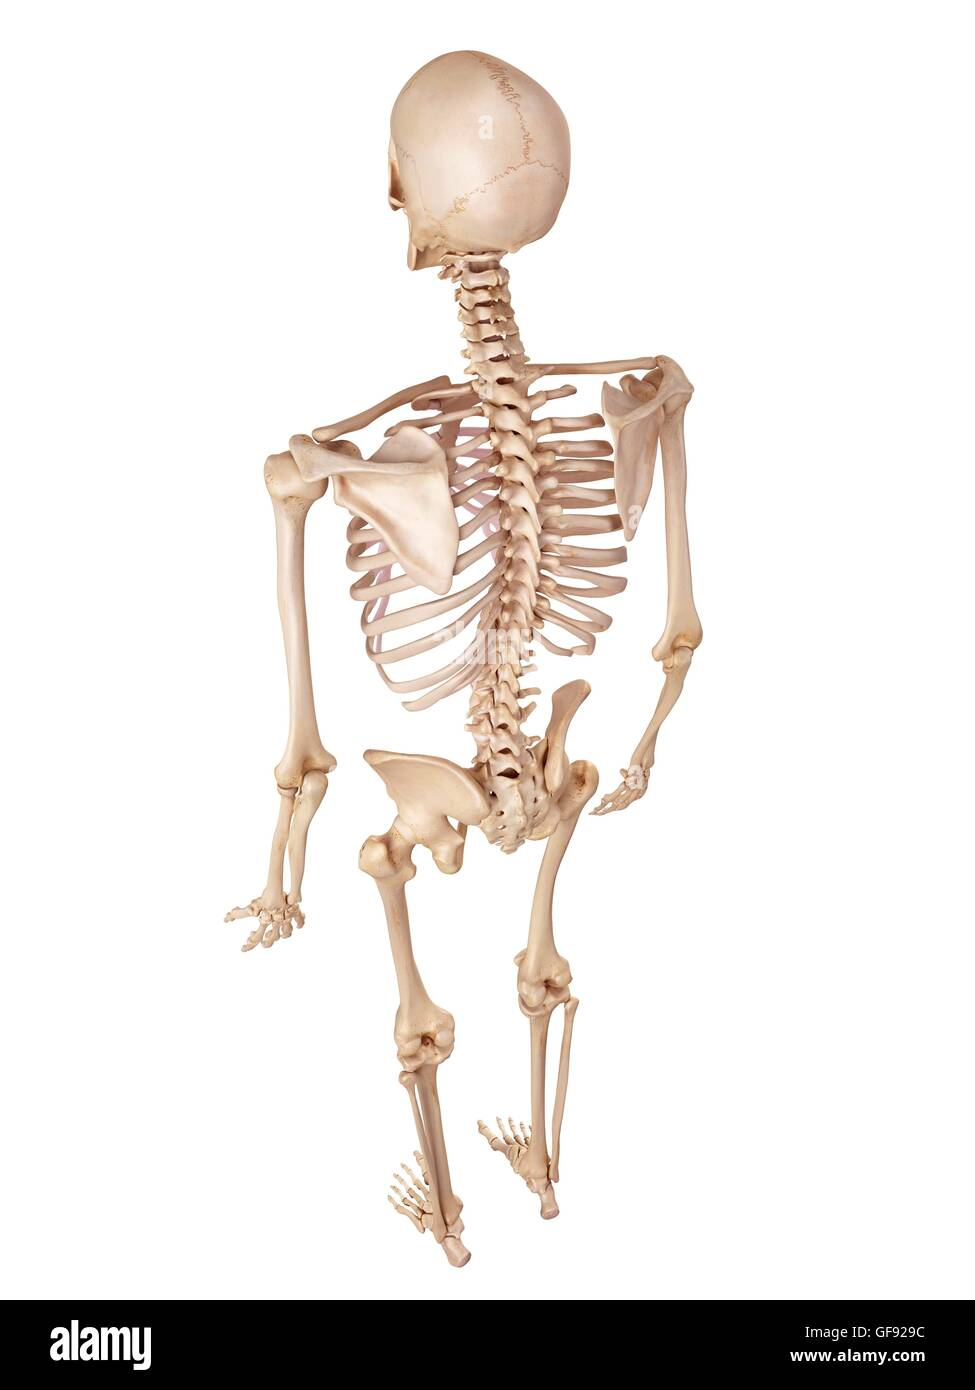 Human Skeletal System Illustration Stock Photo 112681448 Alamy